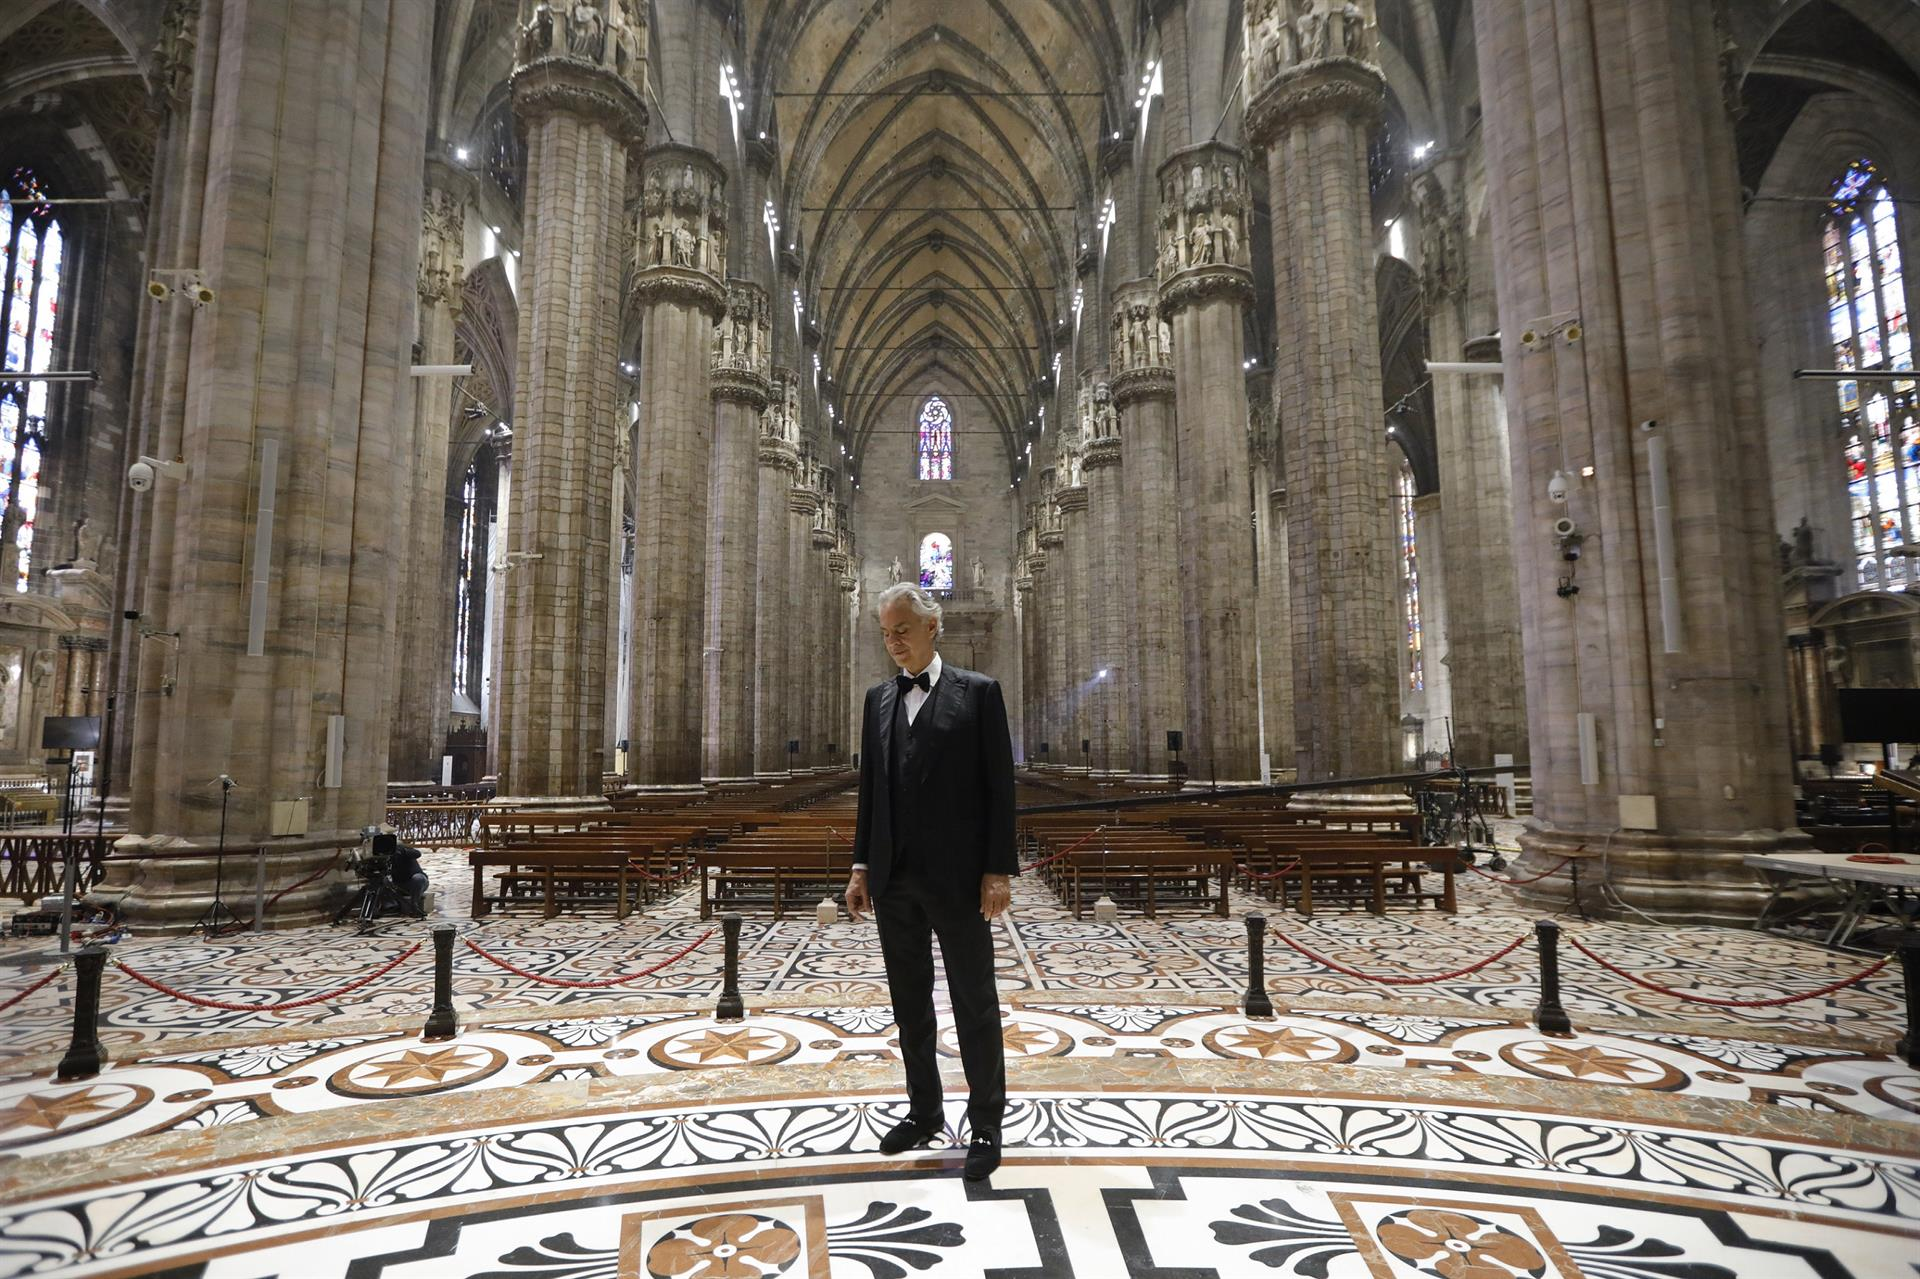 Bocelli Duomo 1 Credit LUCA ROSSETTI, COURTESY SUGAR SRL, DECCA RECORDS